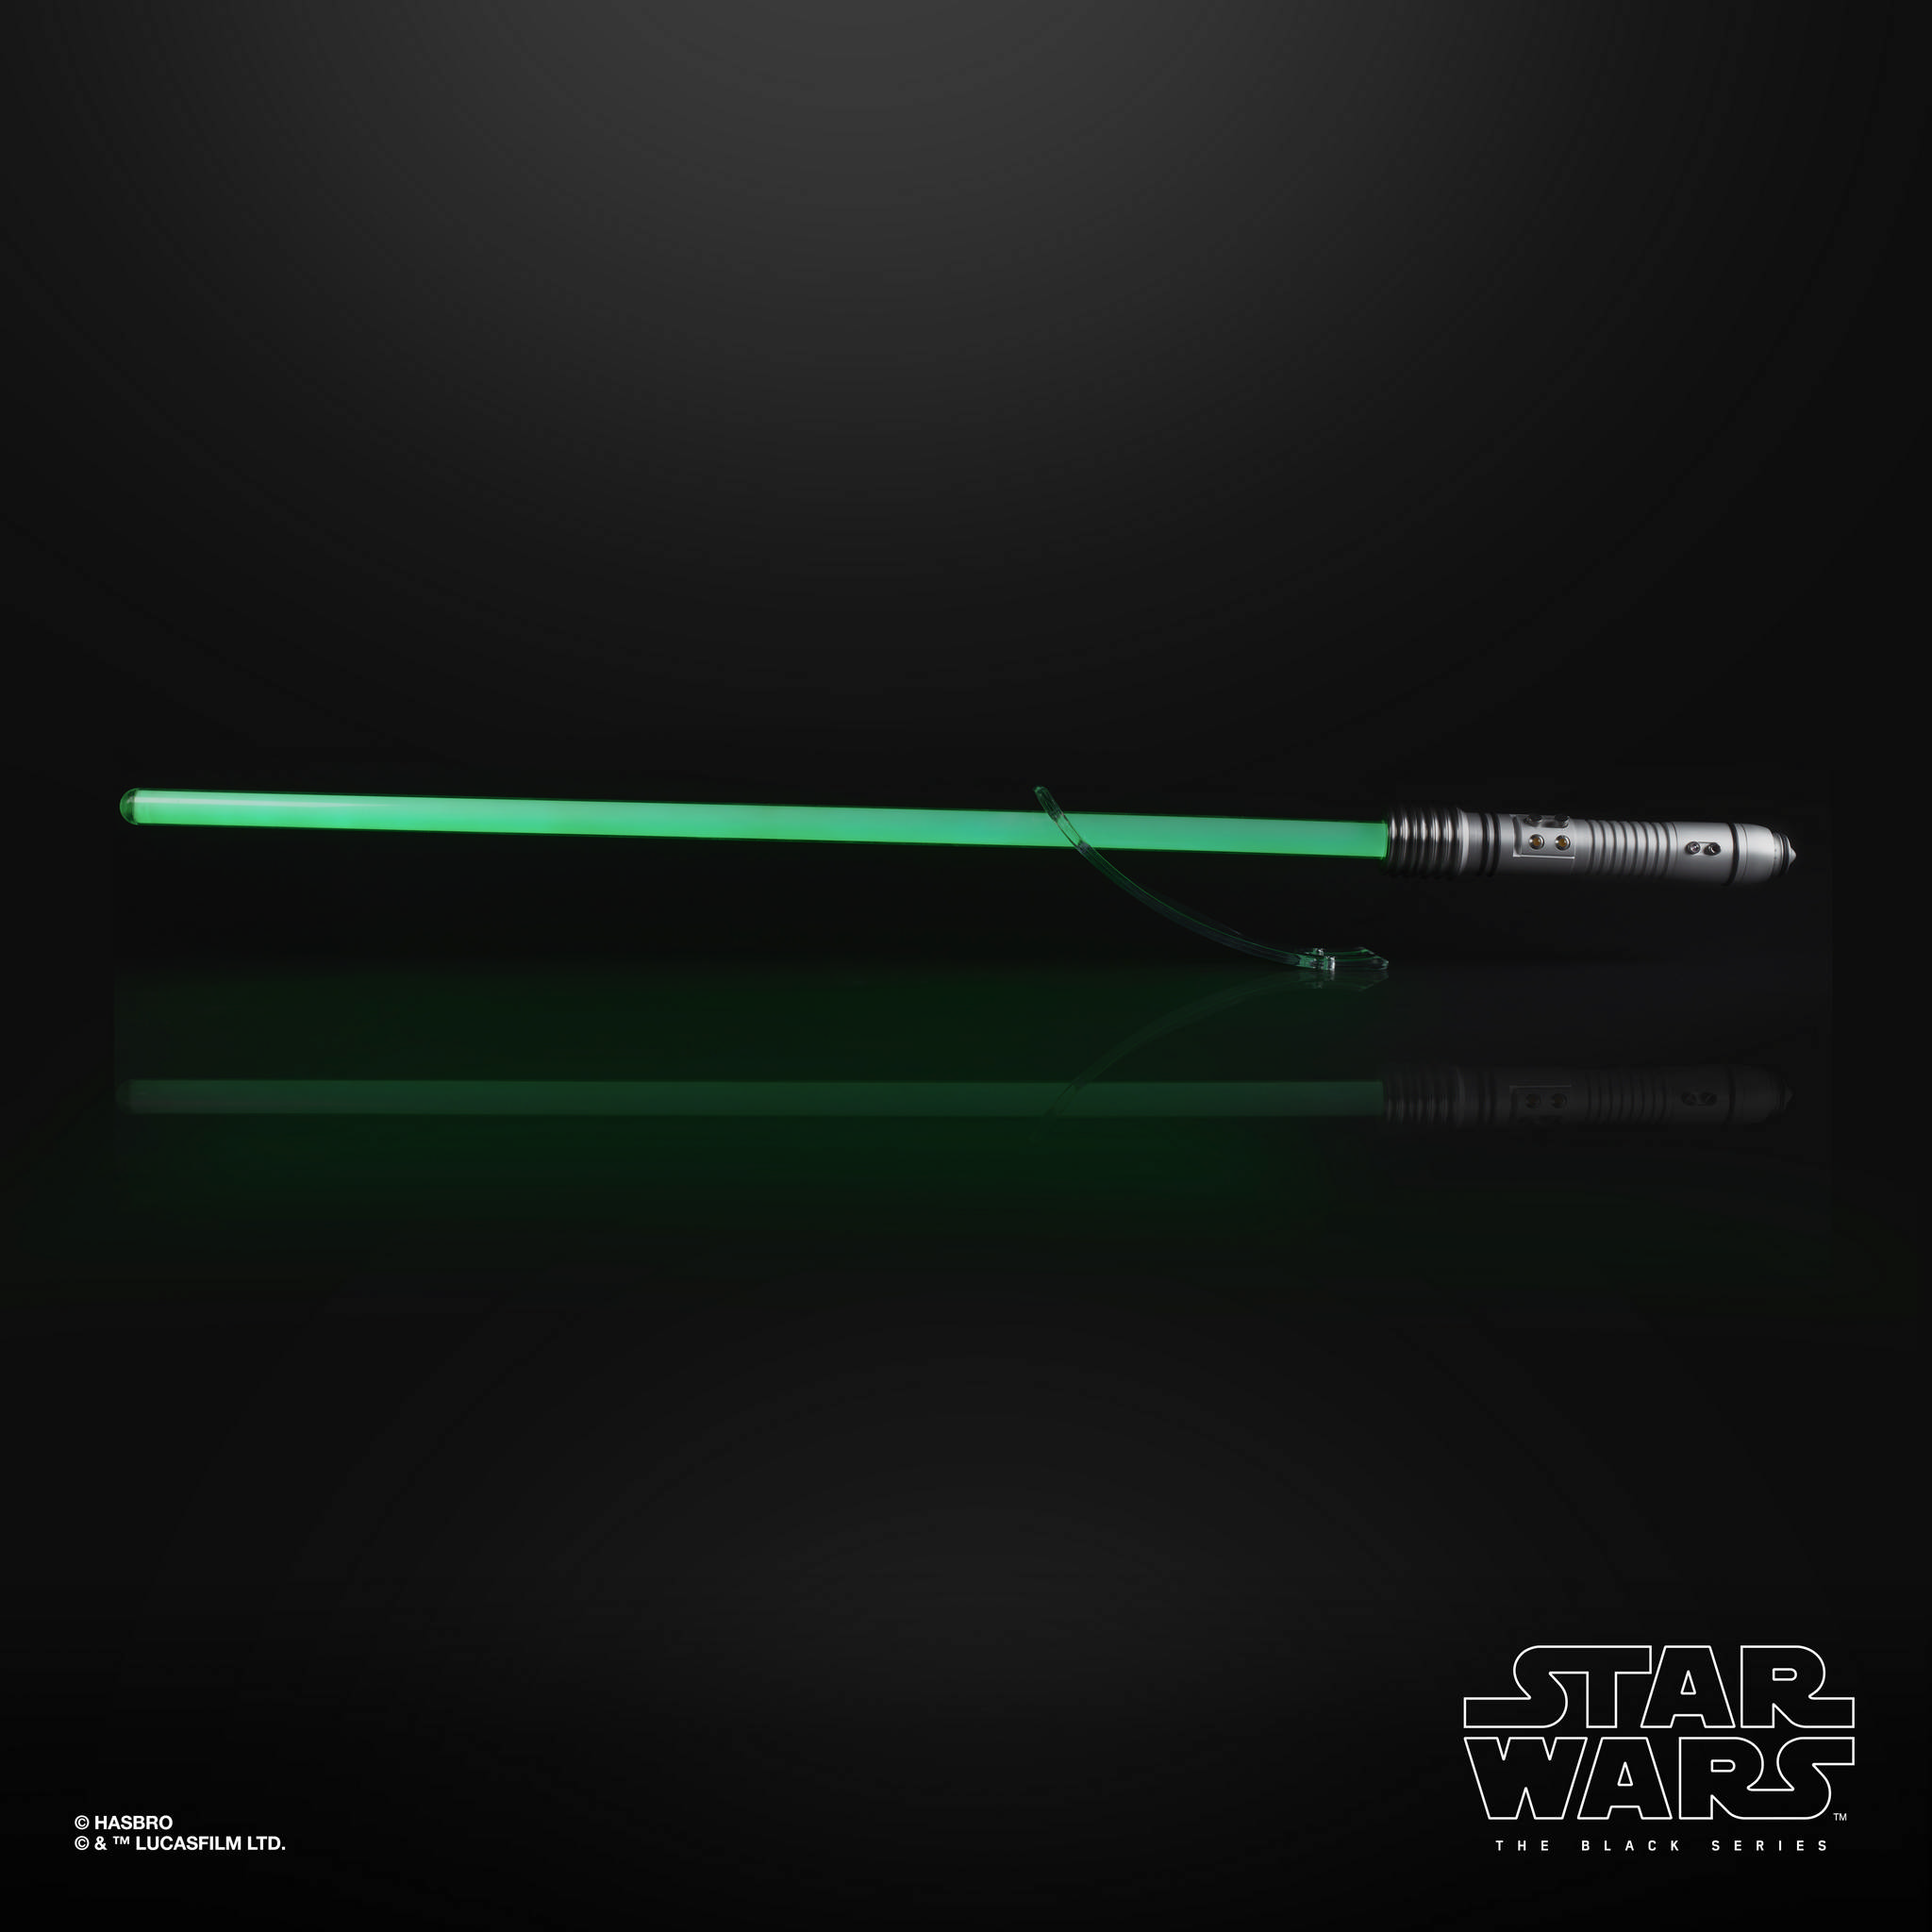 STAR WARS THE BLACK SERIES KIT FISTO FORCE FX ELITE LIGHTSABER 2